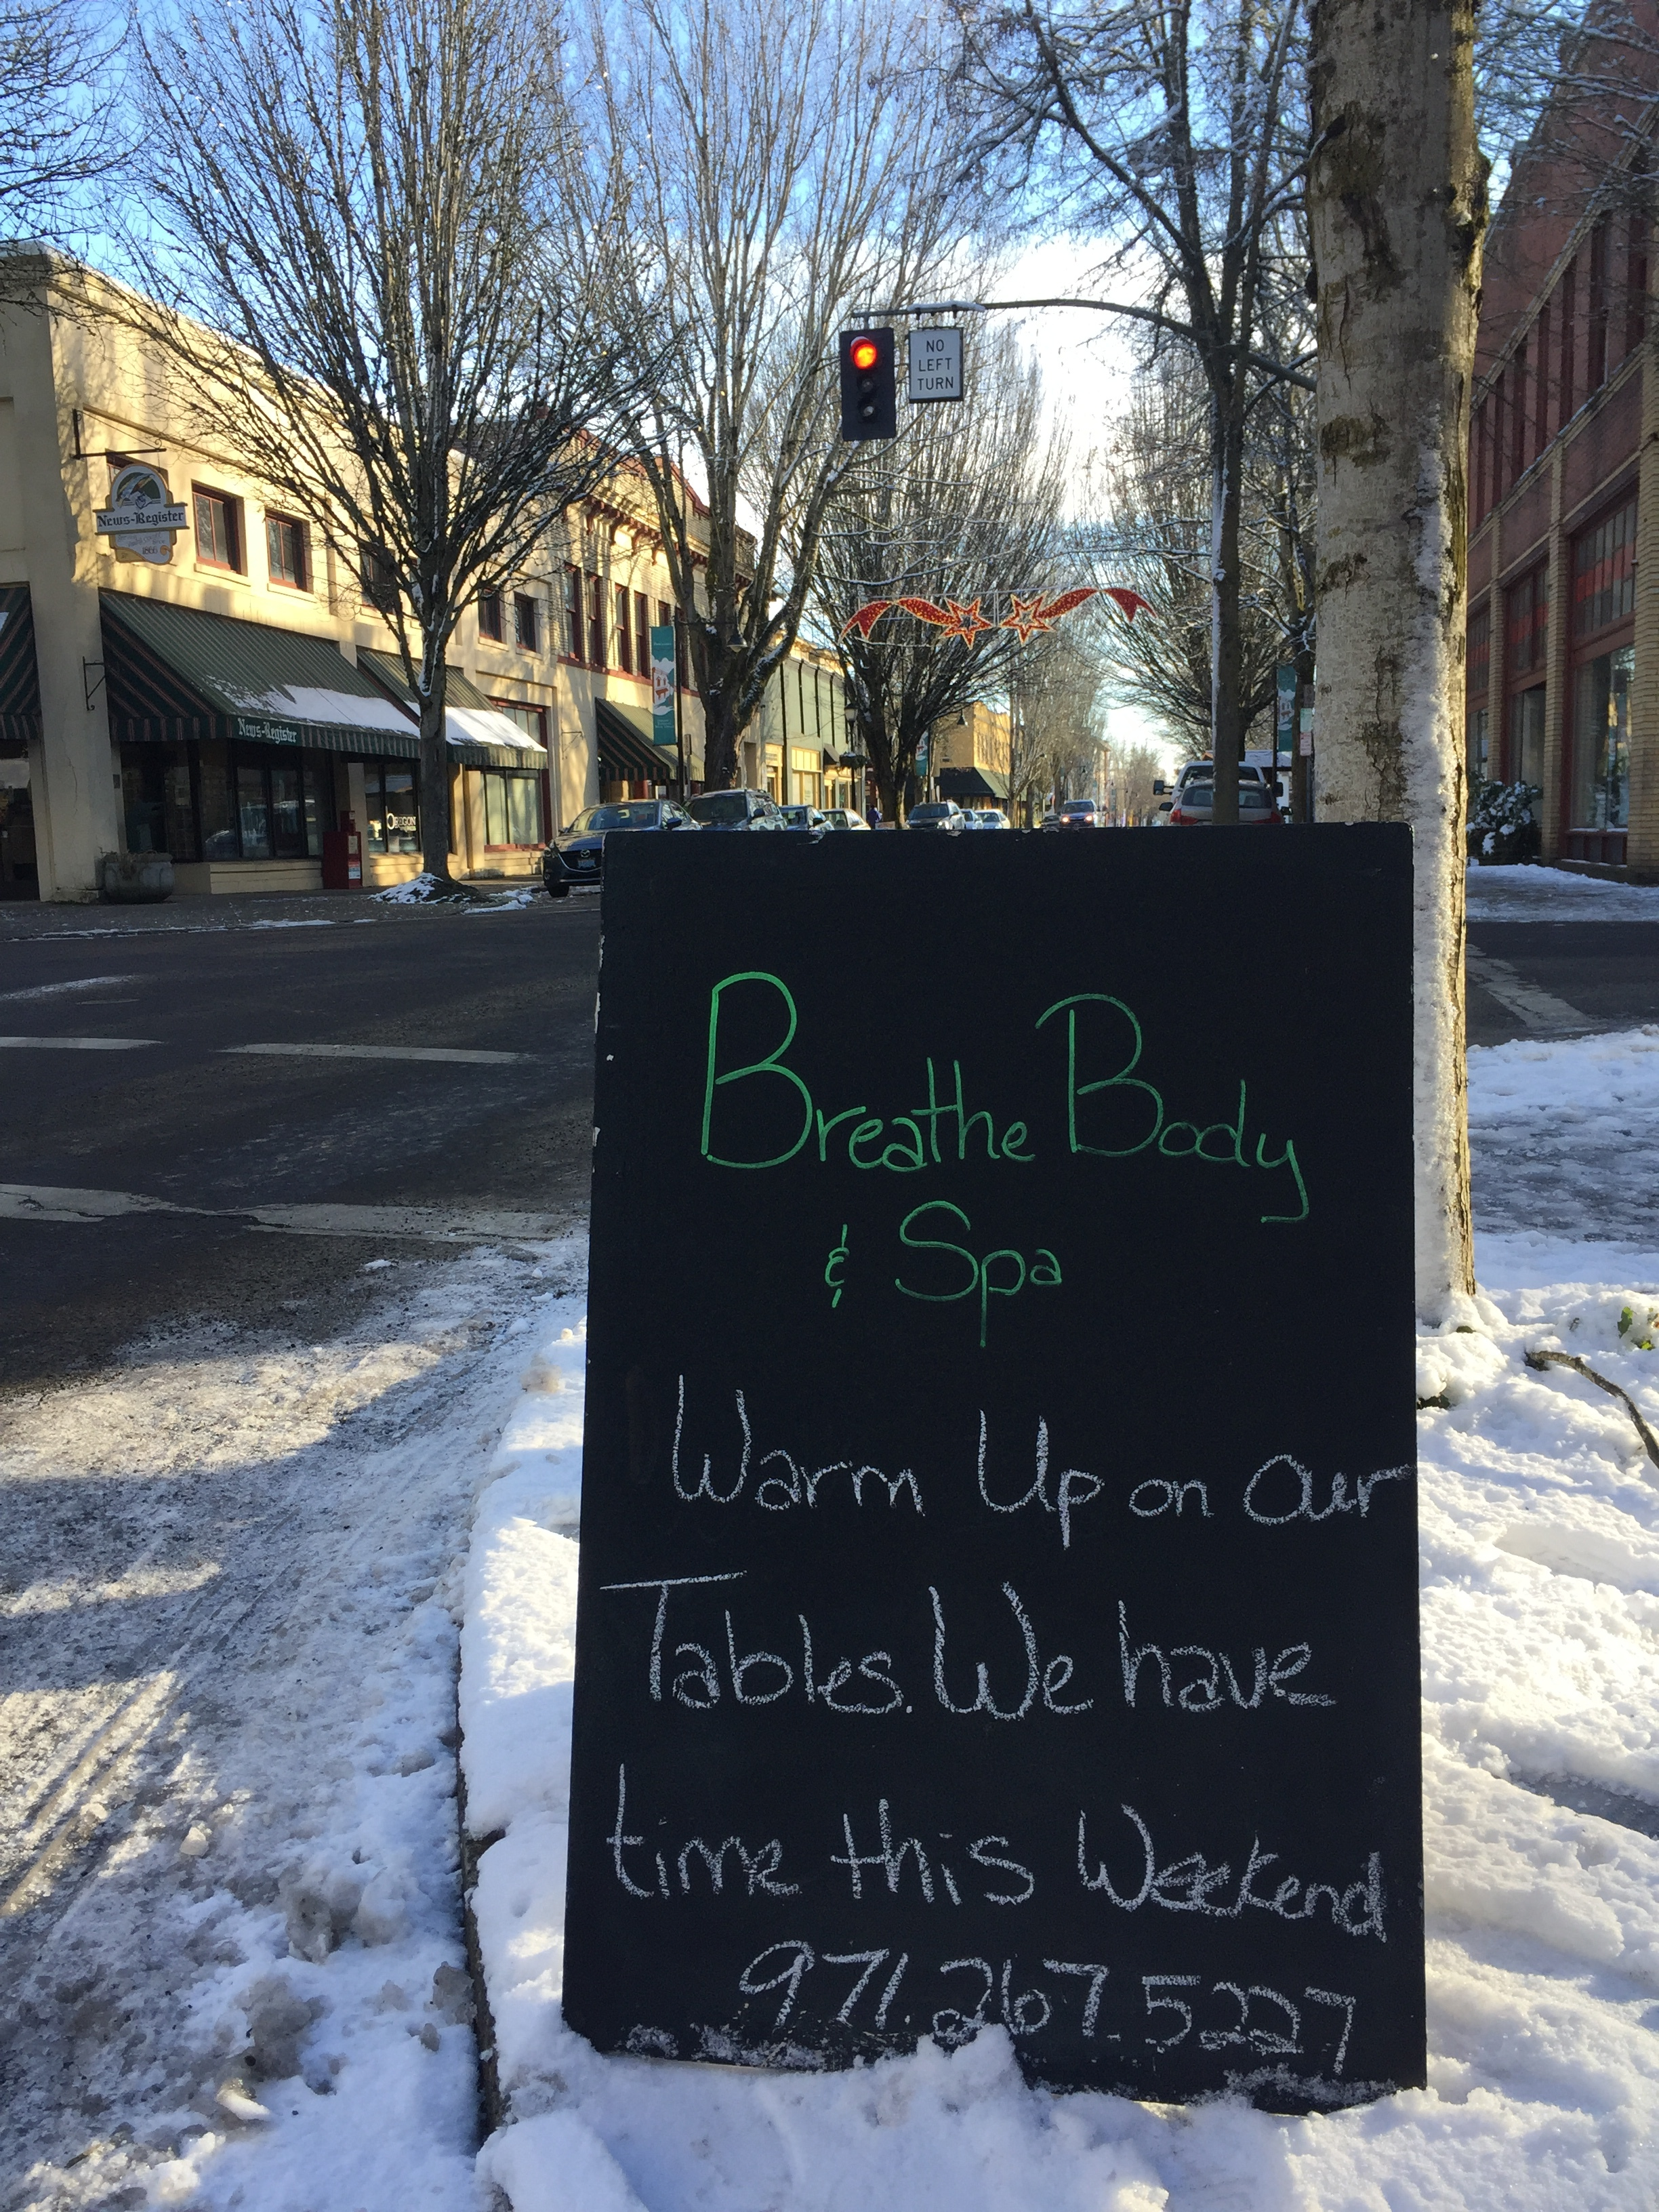 Downtown McMinnville Warm Up Massage Heated Tables Hot Towels